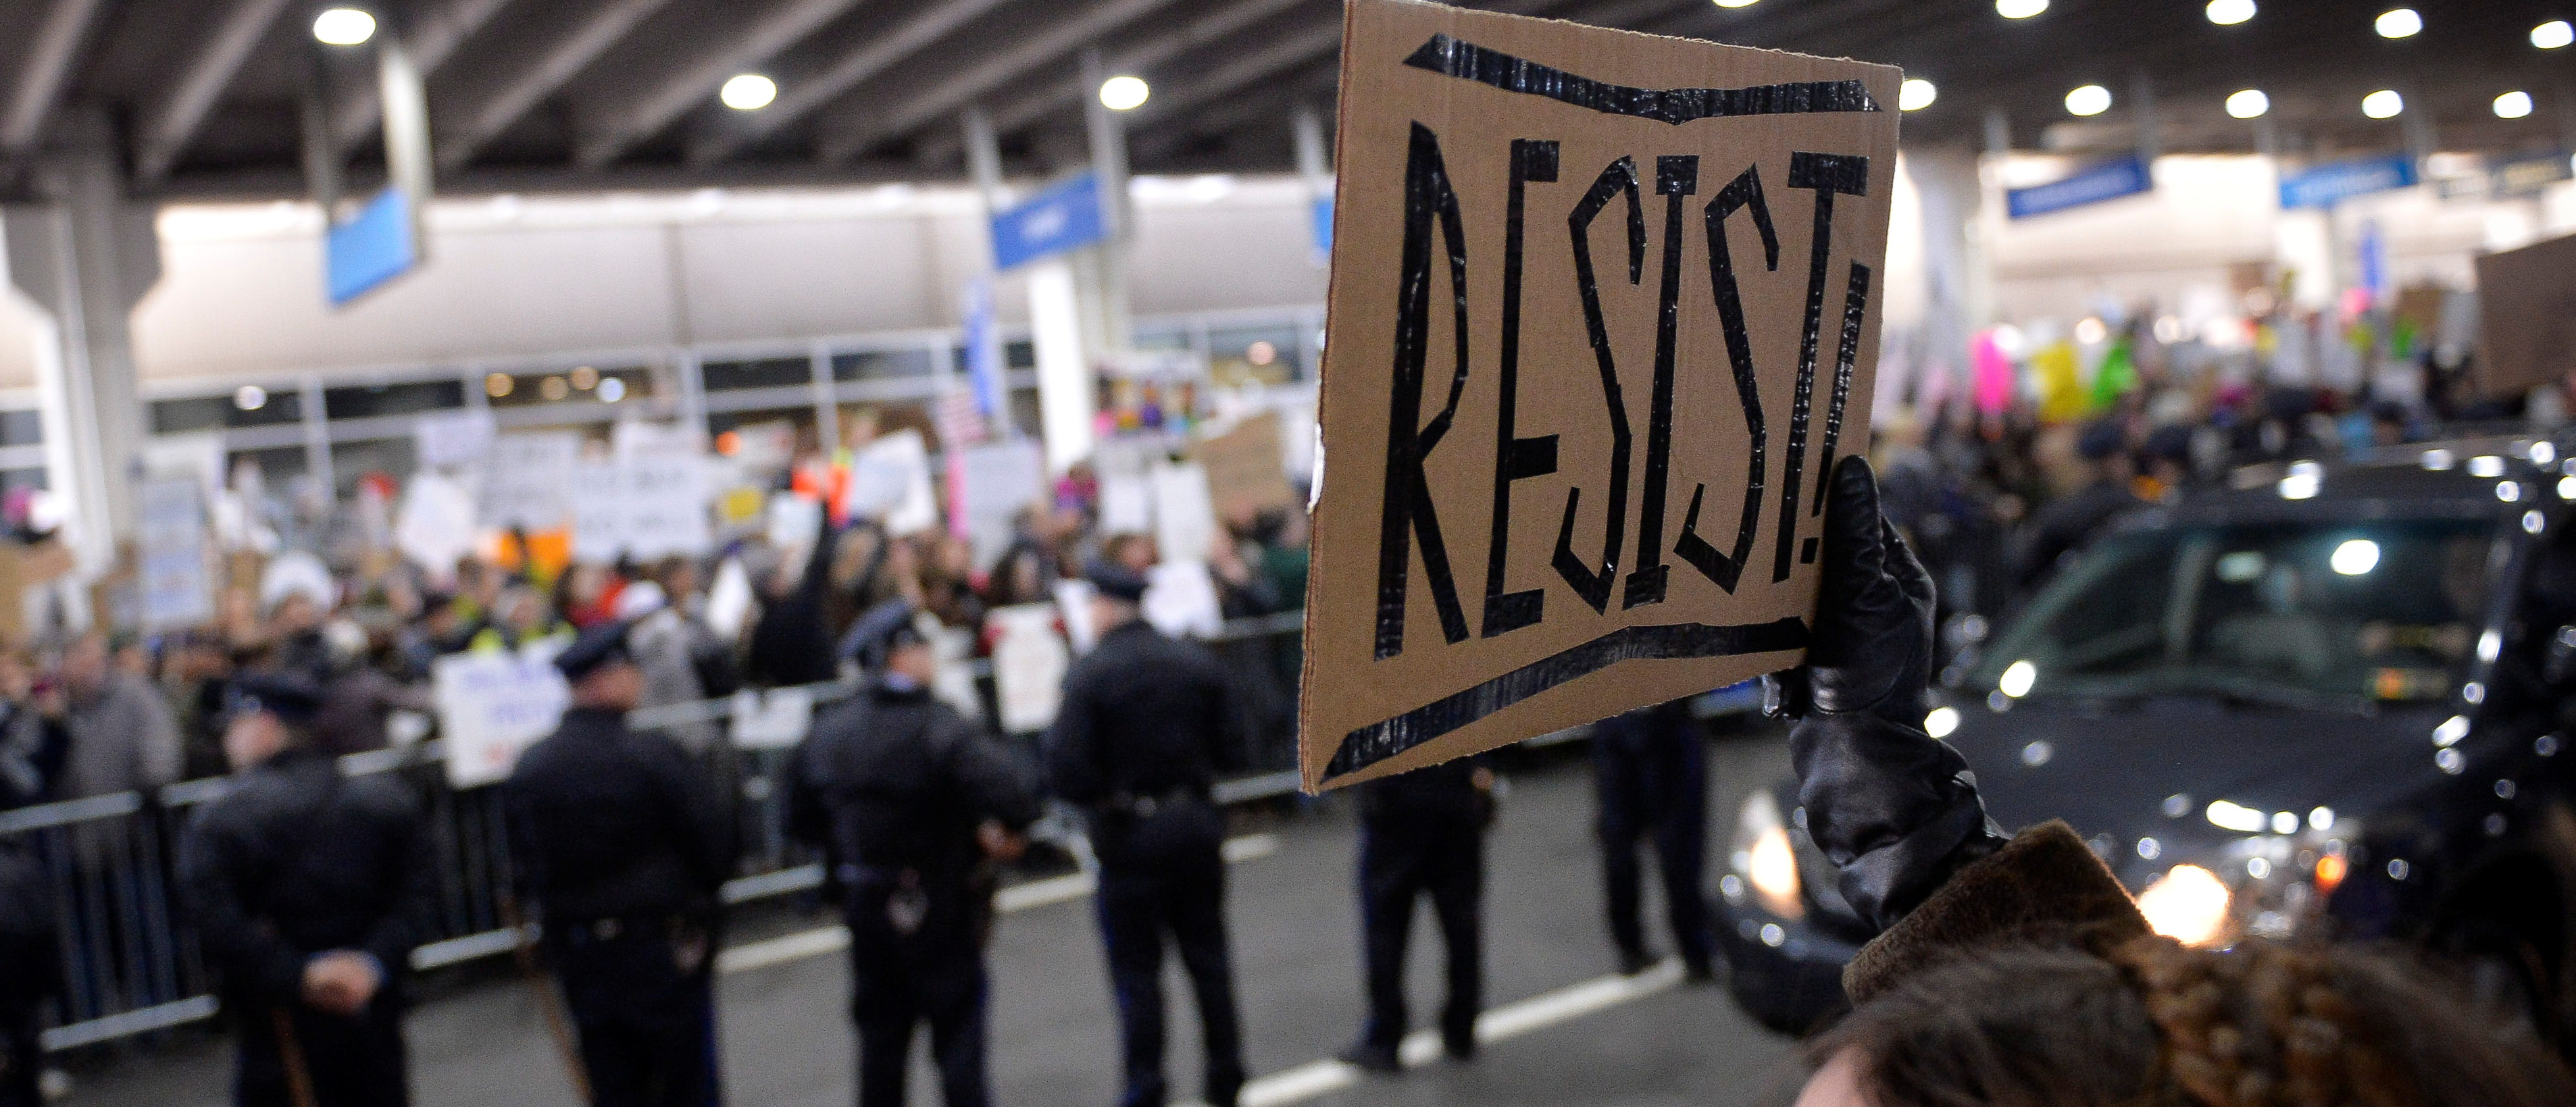 """A demonstrator holds a """"resist"""" sign during anti-Donald Trump travel ban protests outside Philadelphia International Airport in Philadelphia, Pennsylvania, U.S., January 29, 2017. REUTERS/Charles Mostoller - RC1C22B44C50"""